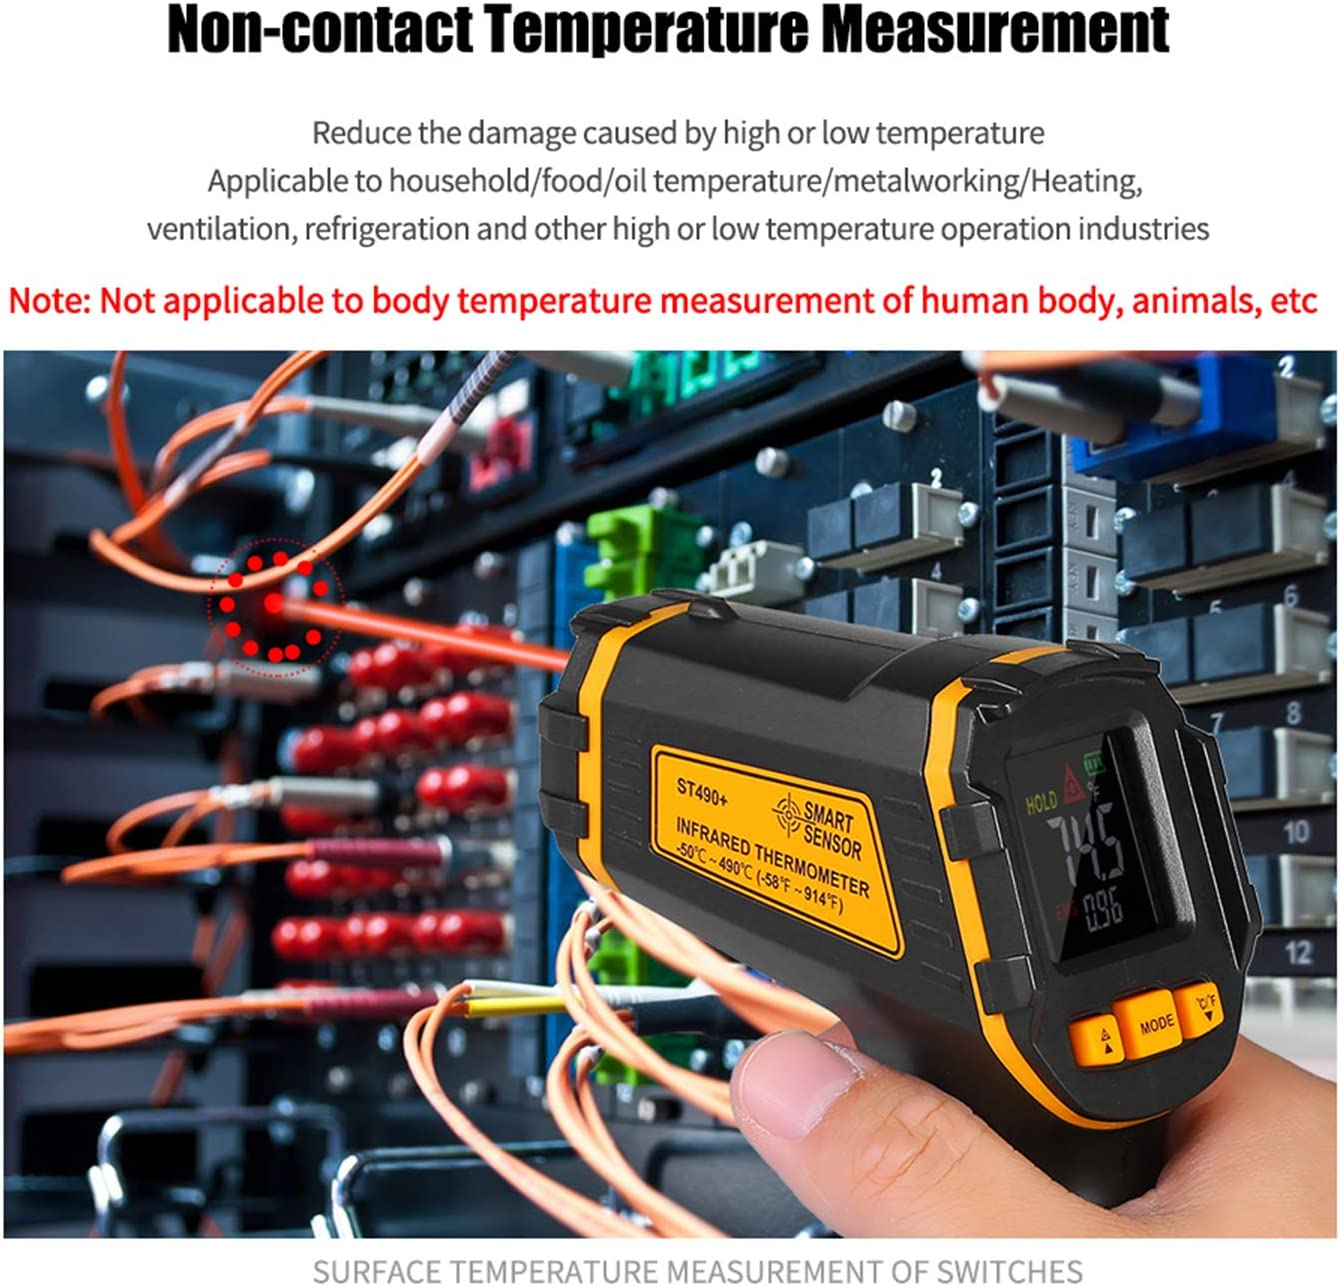 Infrared Thermometer KKmoon Infrared Thermometer 50℃ to 490℃ High Precision Industrial Thermometer Oil Water Temperature Thermoscope ST490+